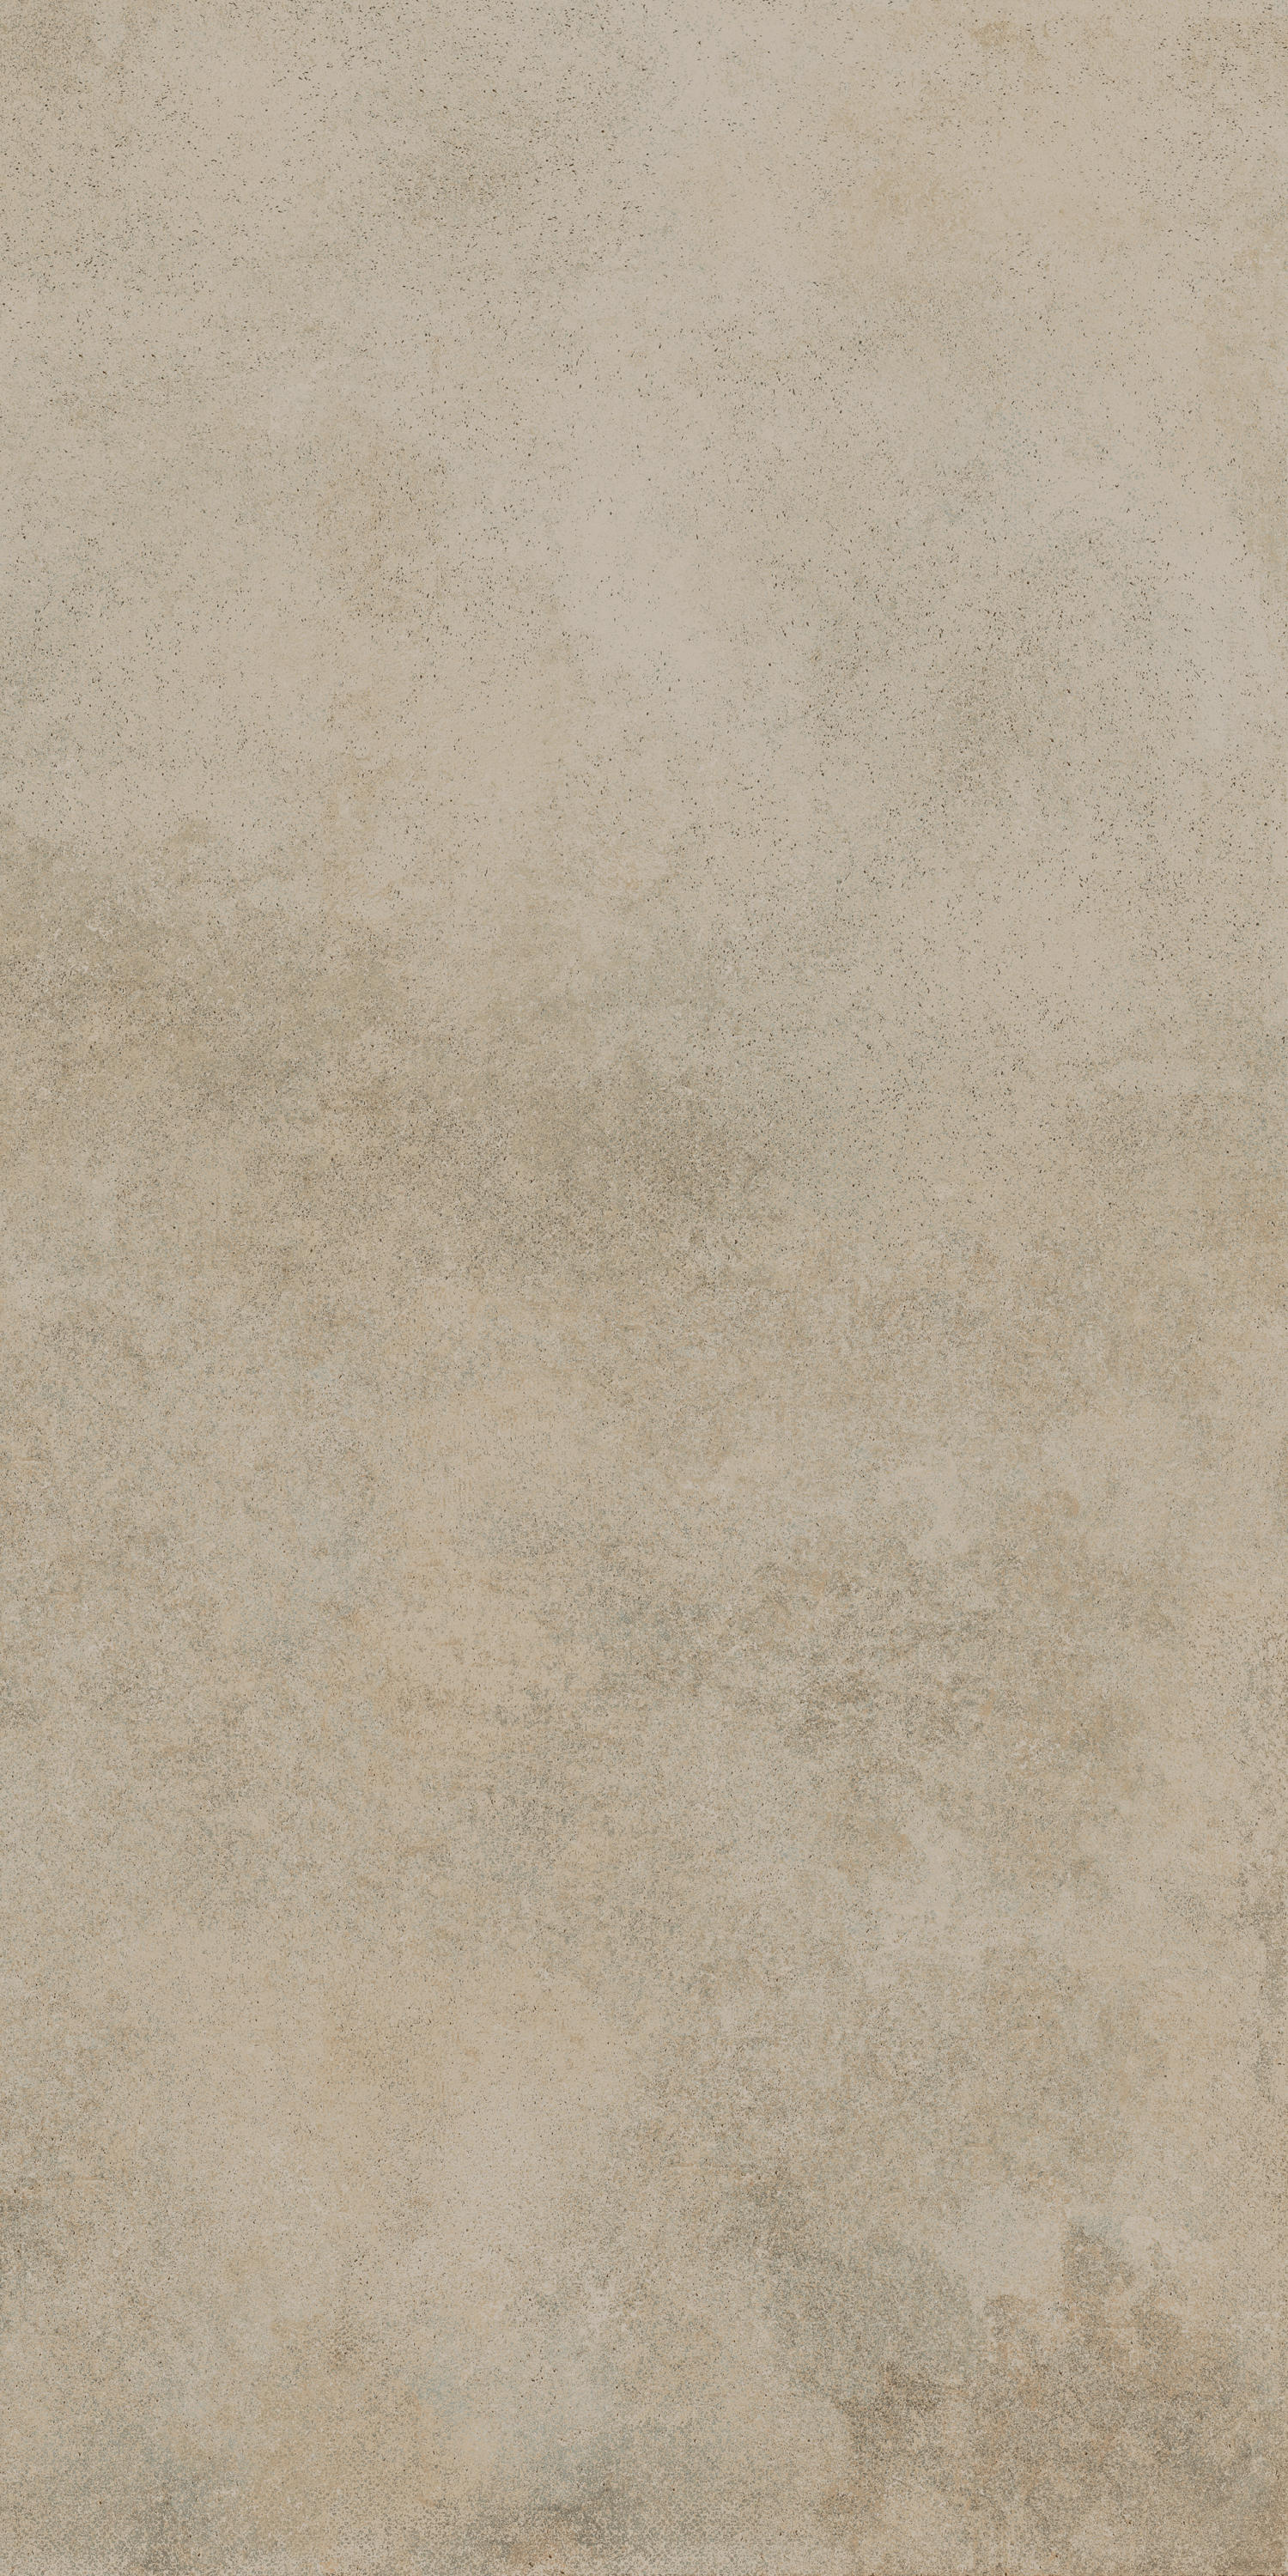 Easy Light Grey By Granitifiandre Ceramic Tiles